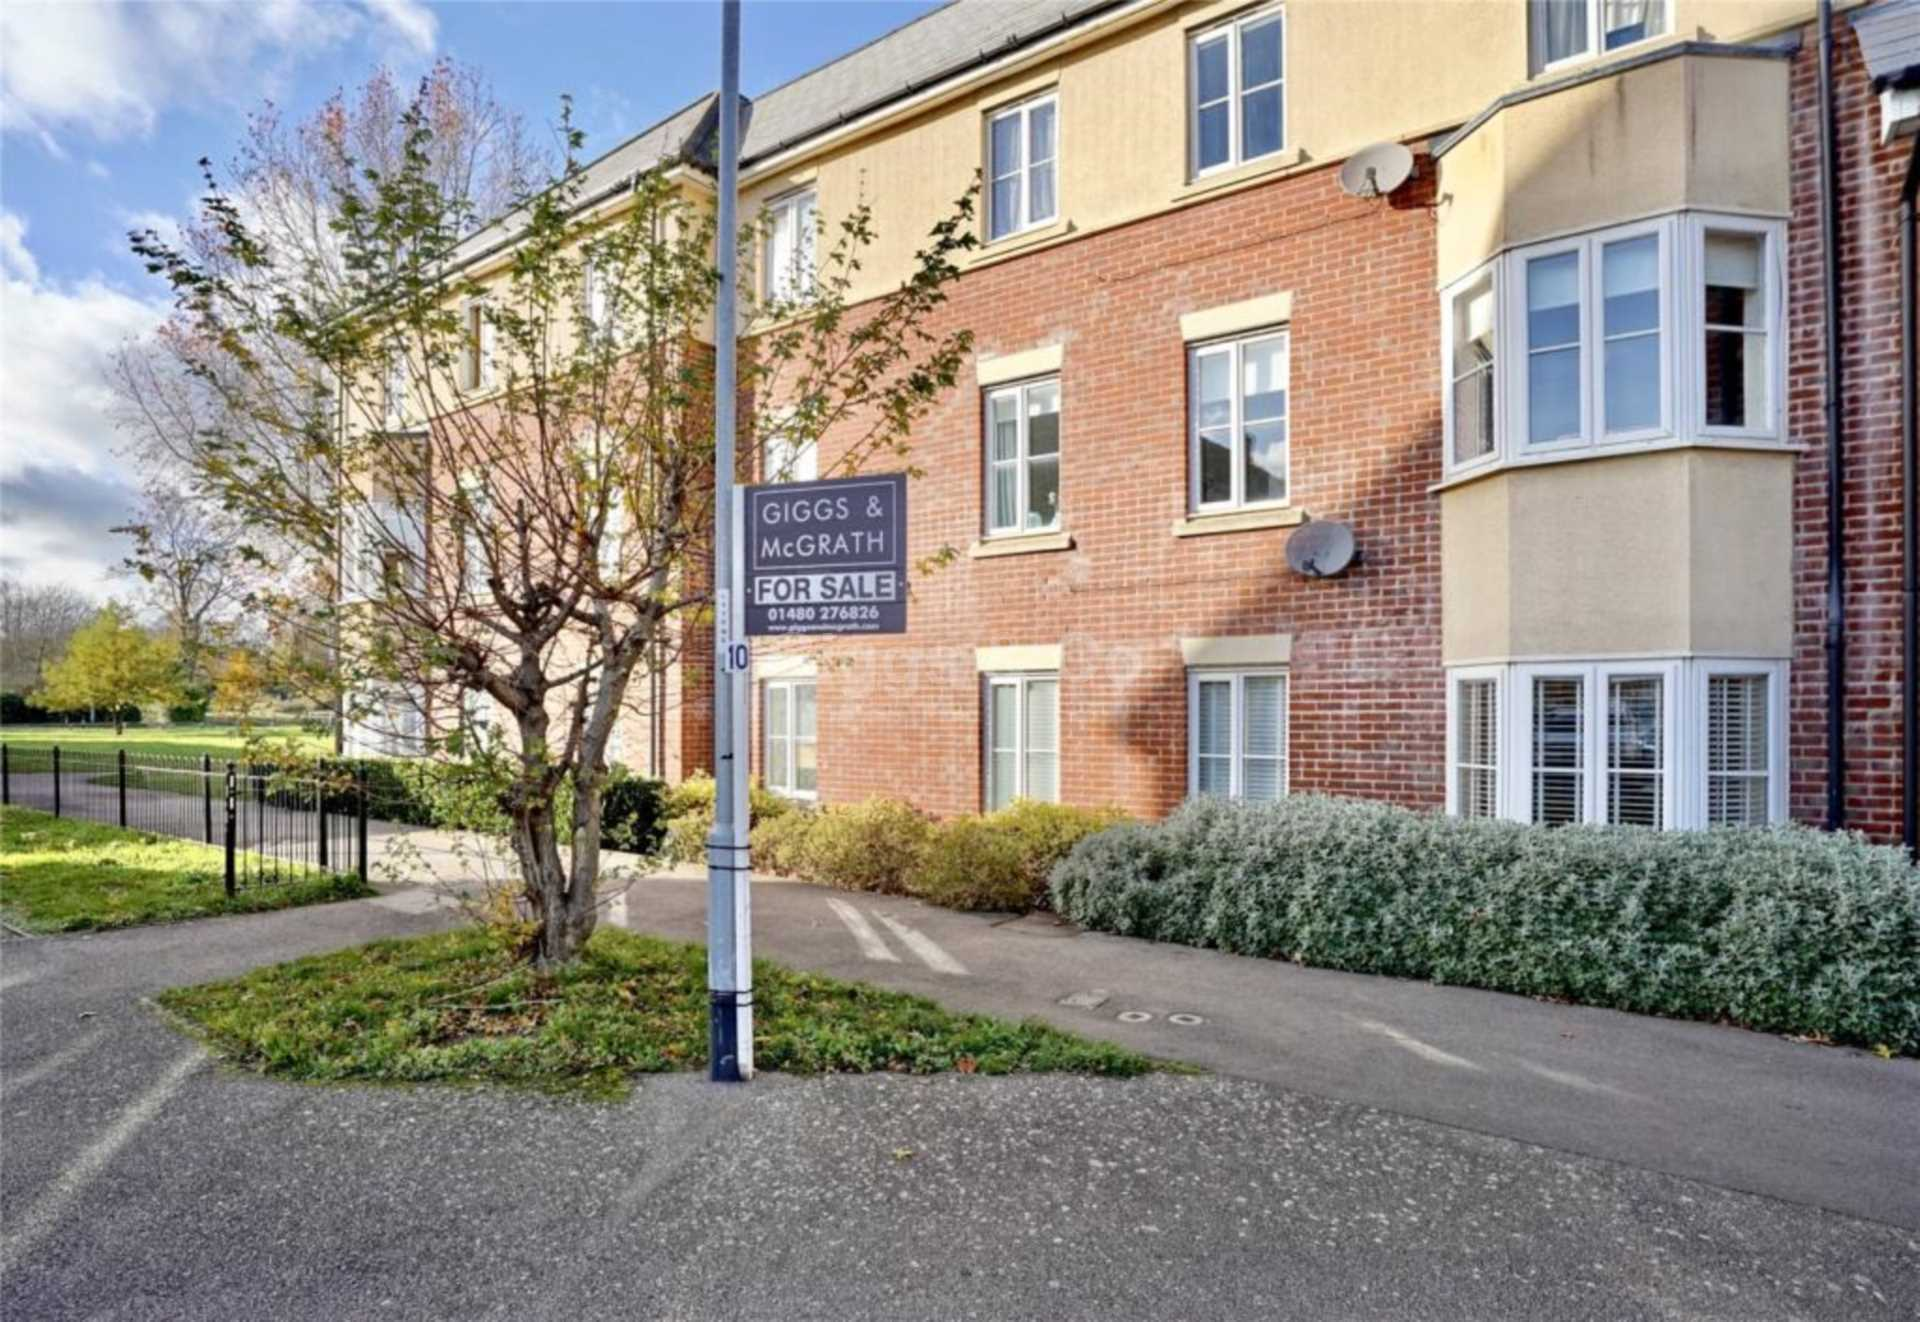 2 bed apartment to rent in Jubilee Green, Papworth Everard, CB23